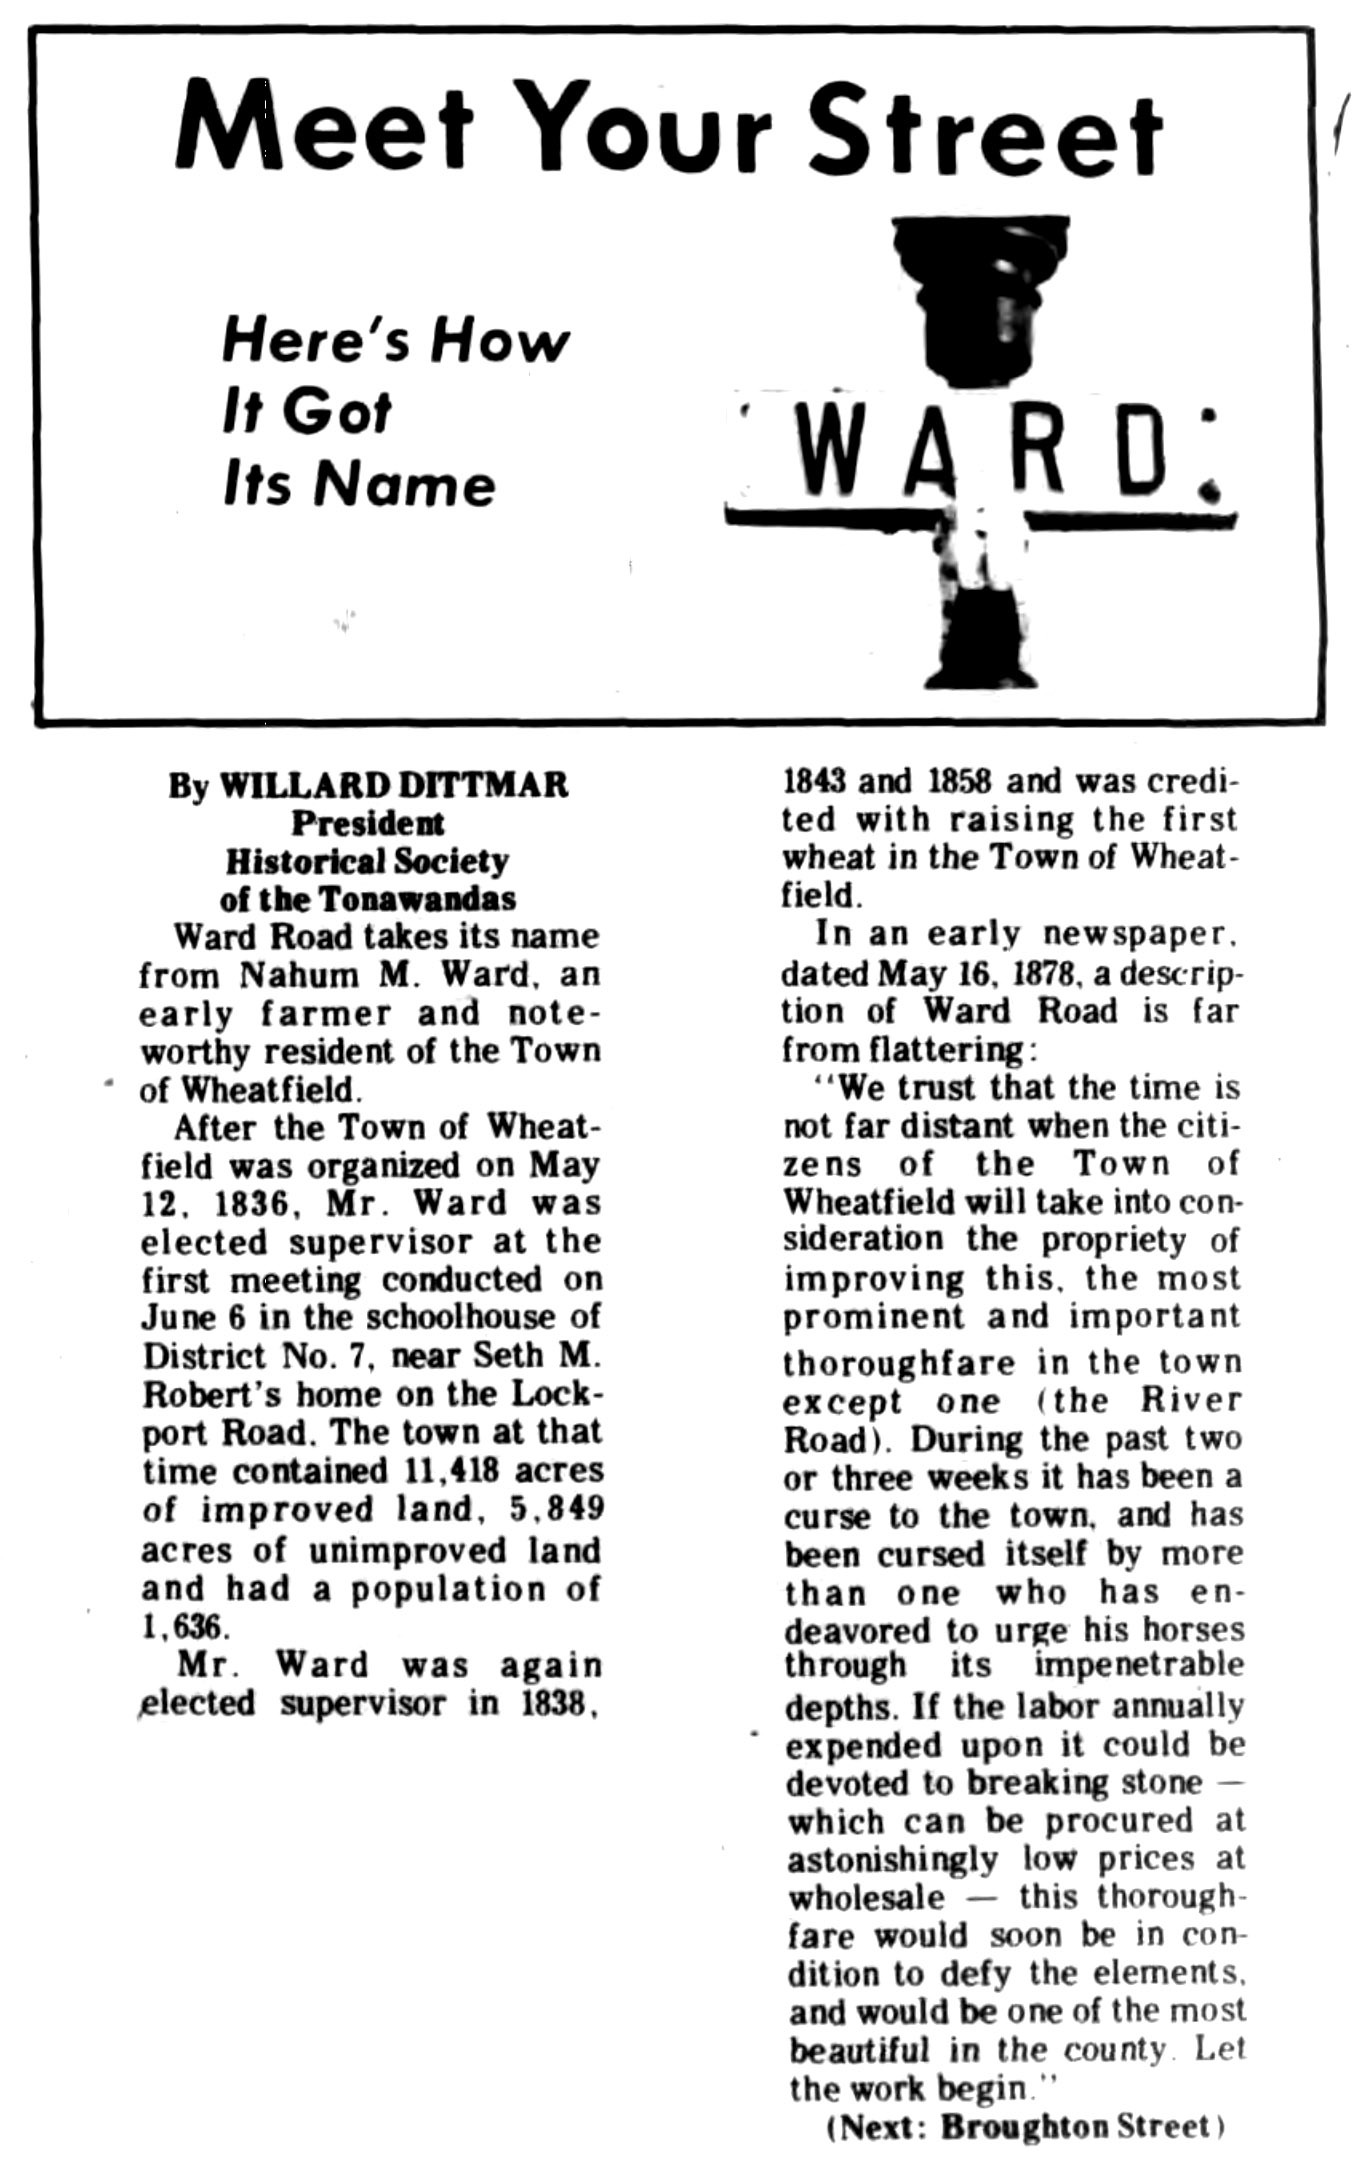 Meet Your Street - Ward (Tonawanada News, 1970-12-04).jpg